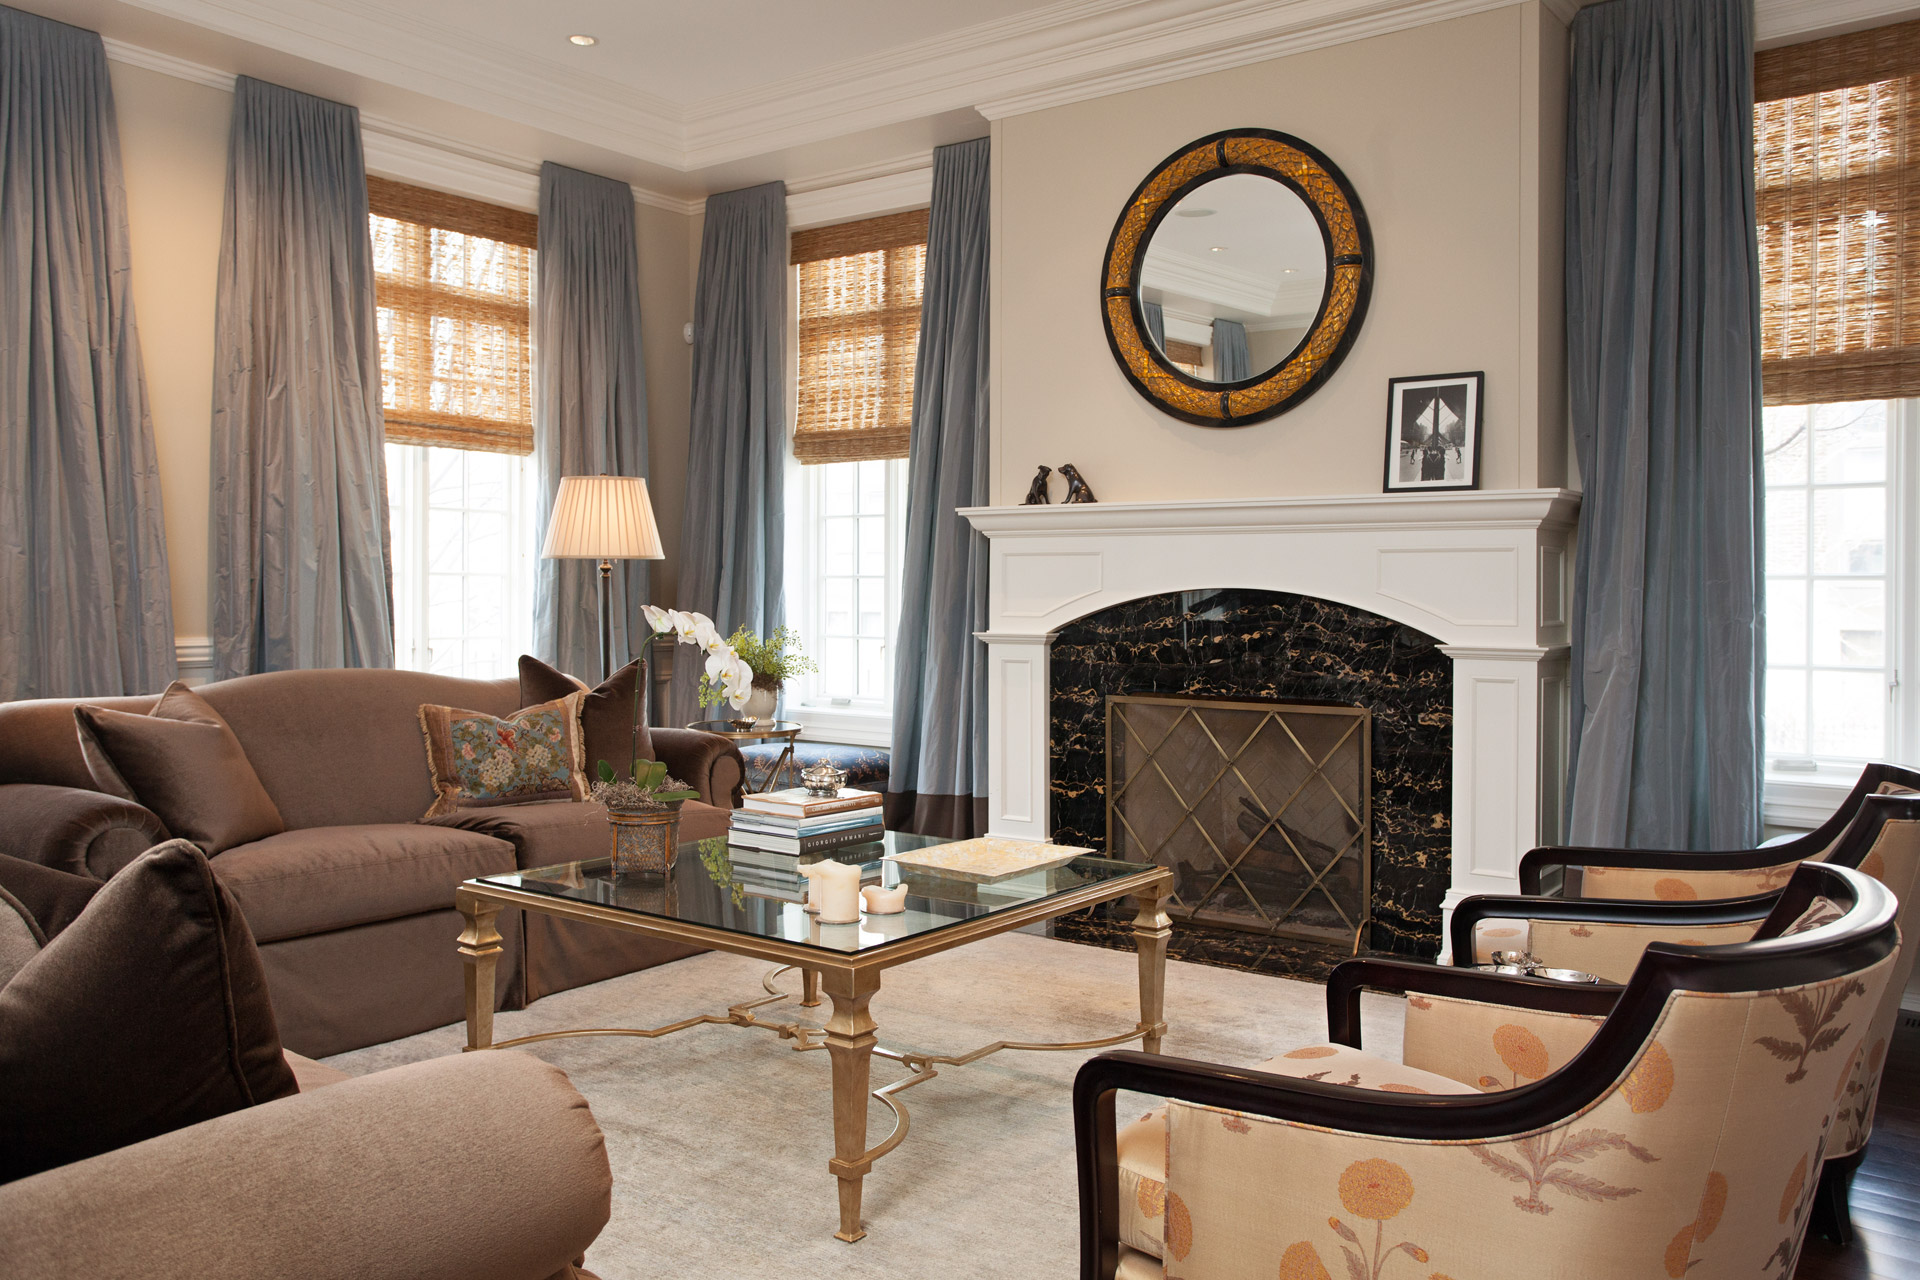 Chicago illinois interior photographers custom luxury home - Living room with fireplace ...